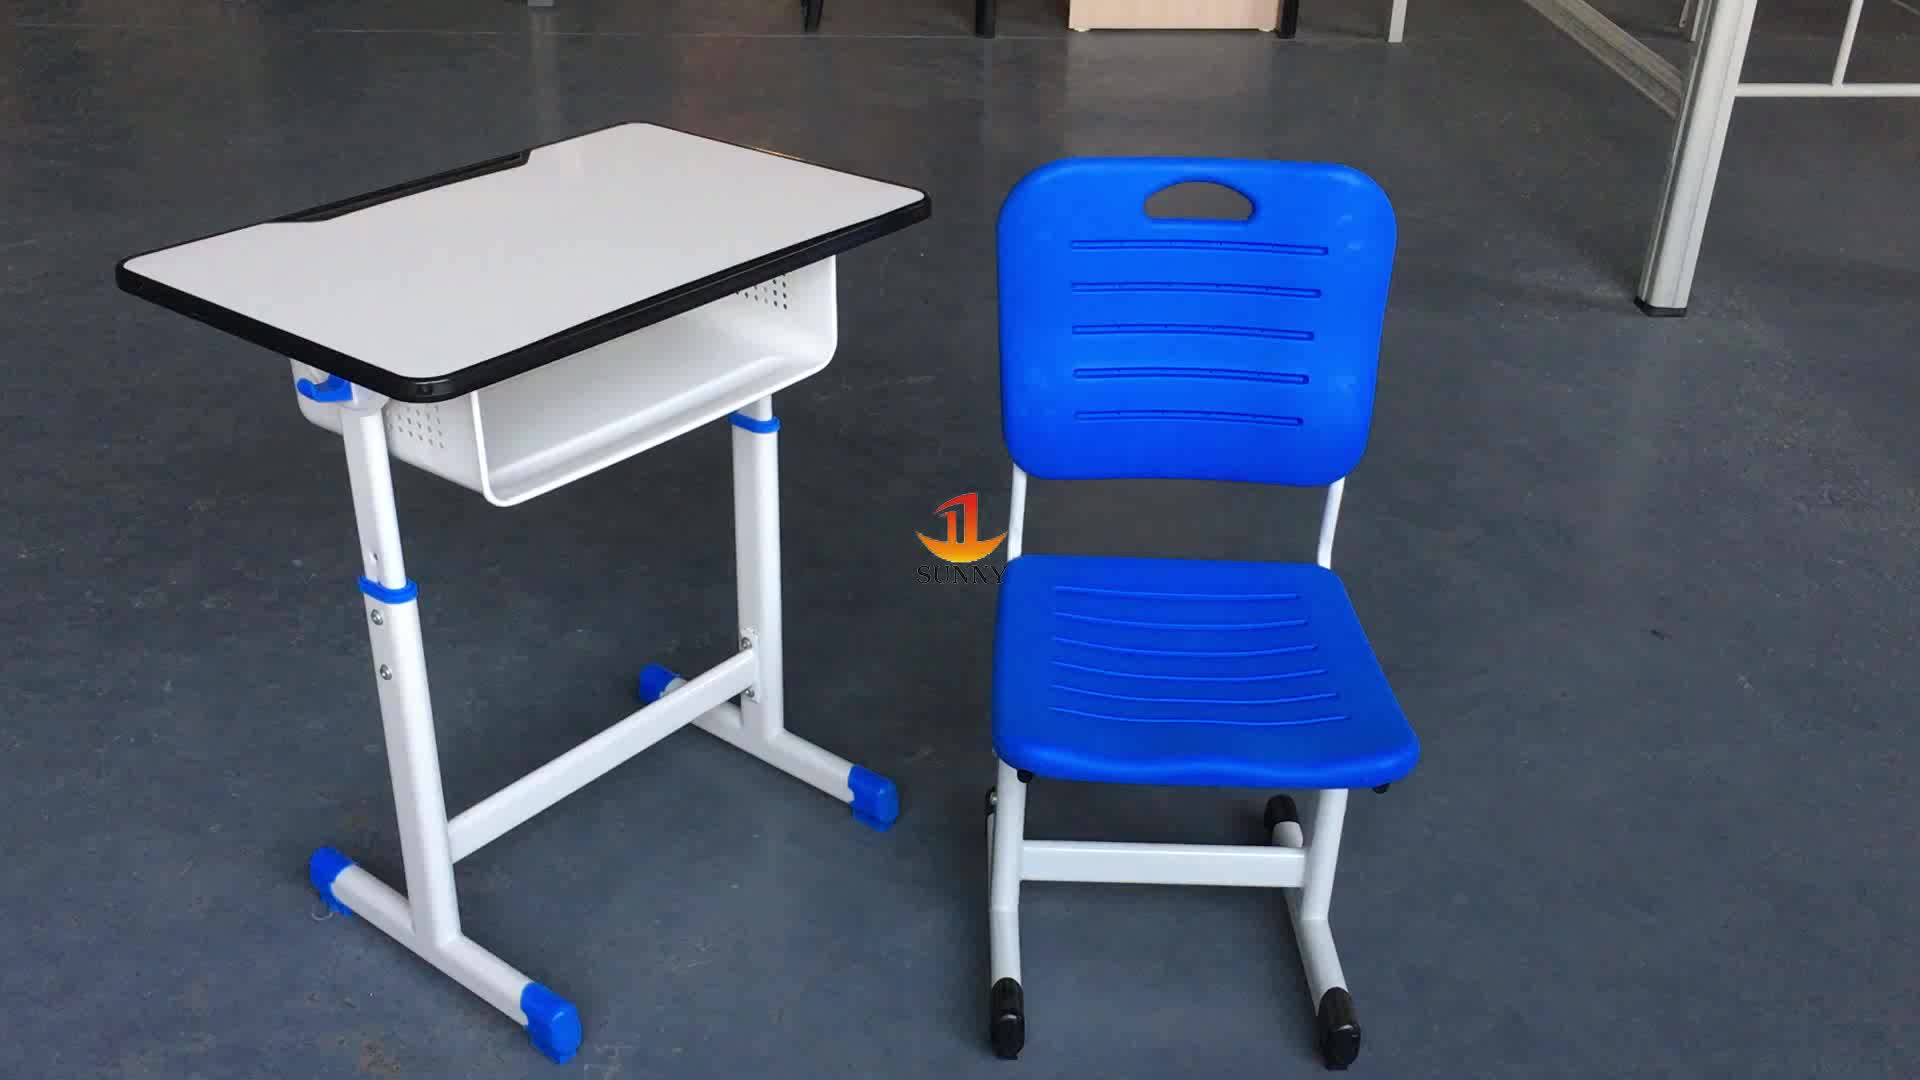 Student Desk And Chair Set Adjustable Single Desk And Plastic Student Chair School